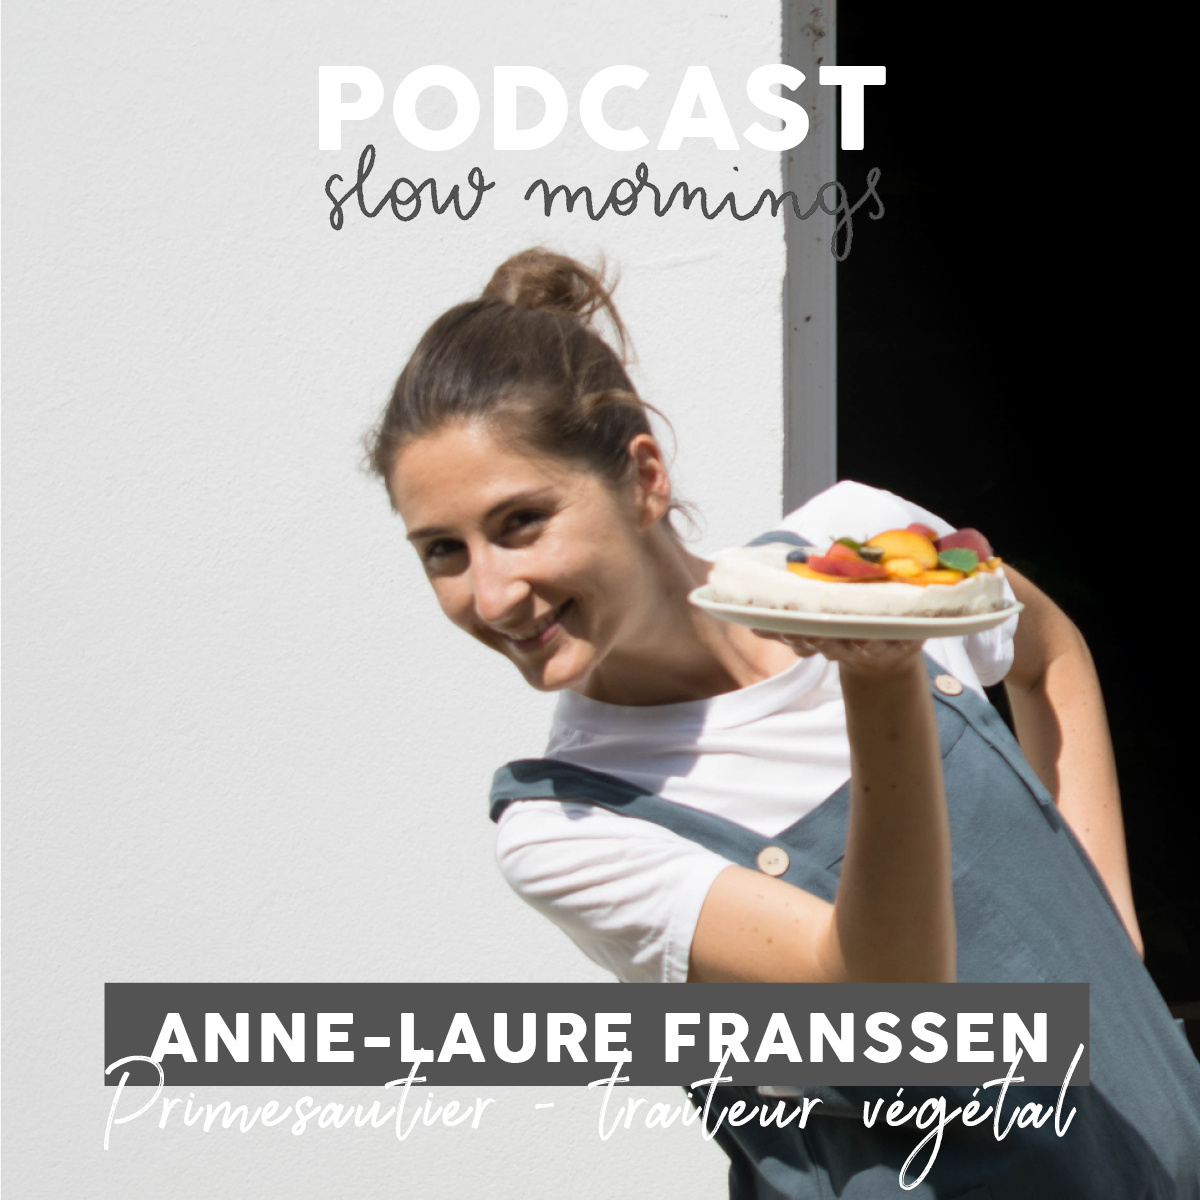 Podcast Anne-Laure Franssen Primesautier